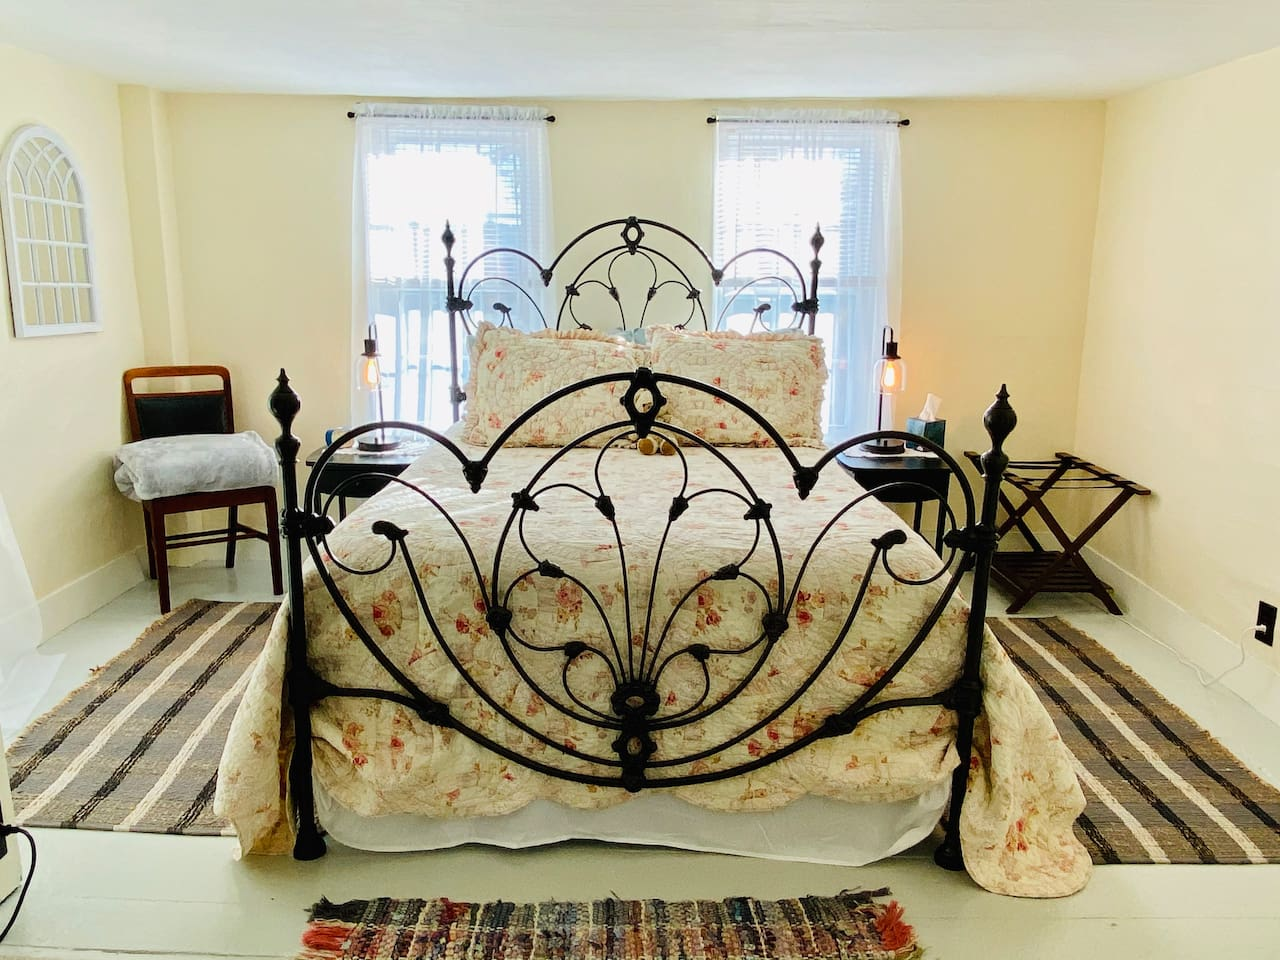 Refinished antique bed frame with queen mattress, soft and firm pillows and cotton bedding.